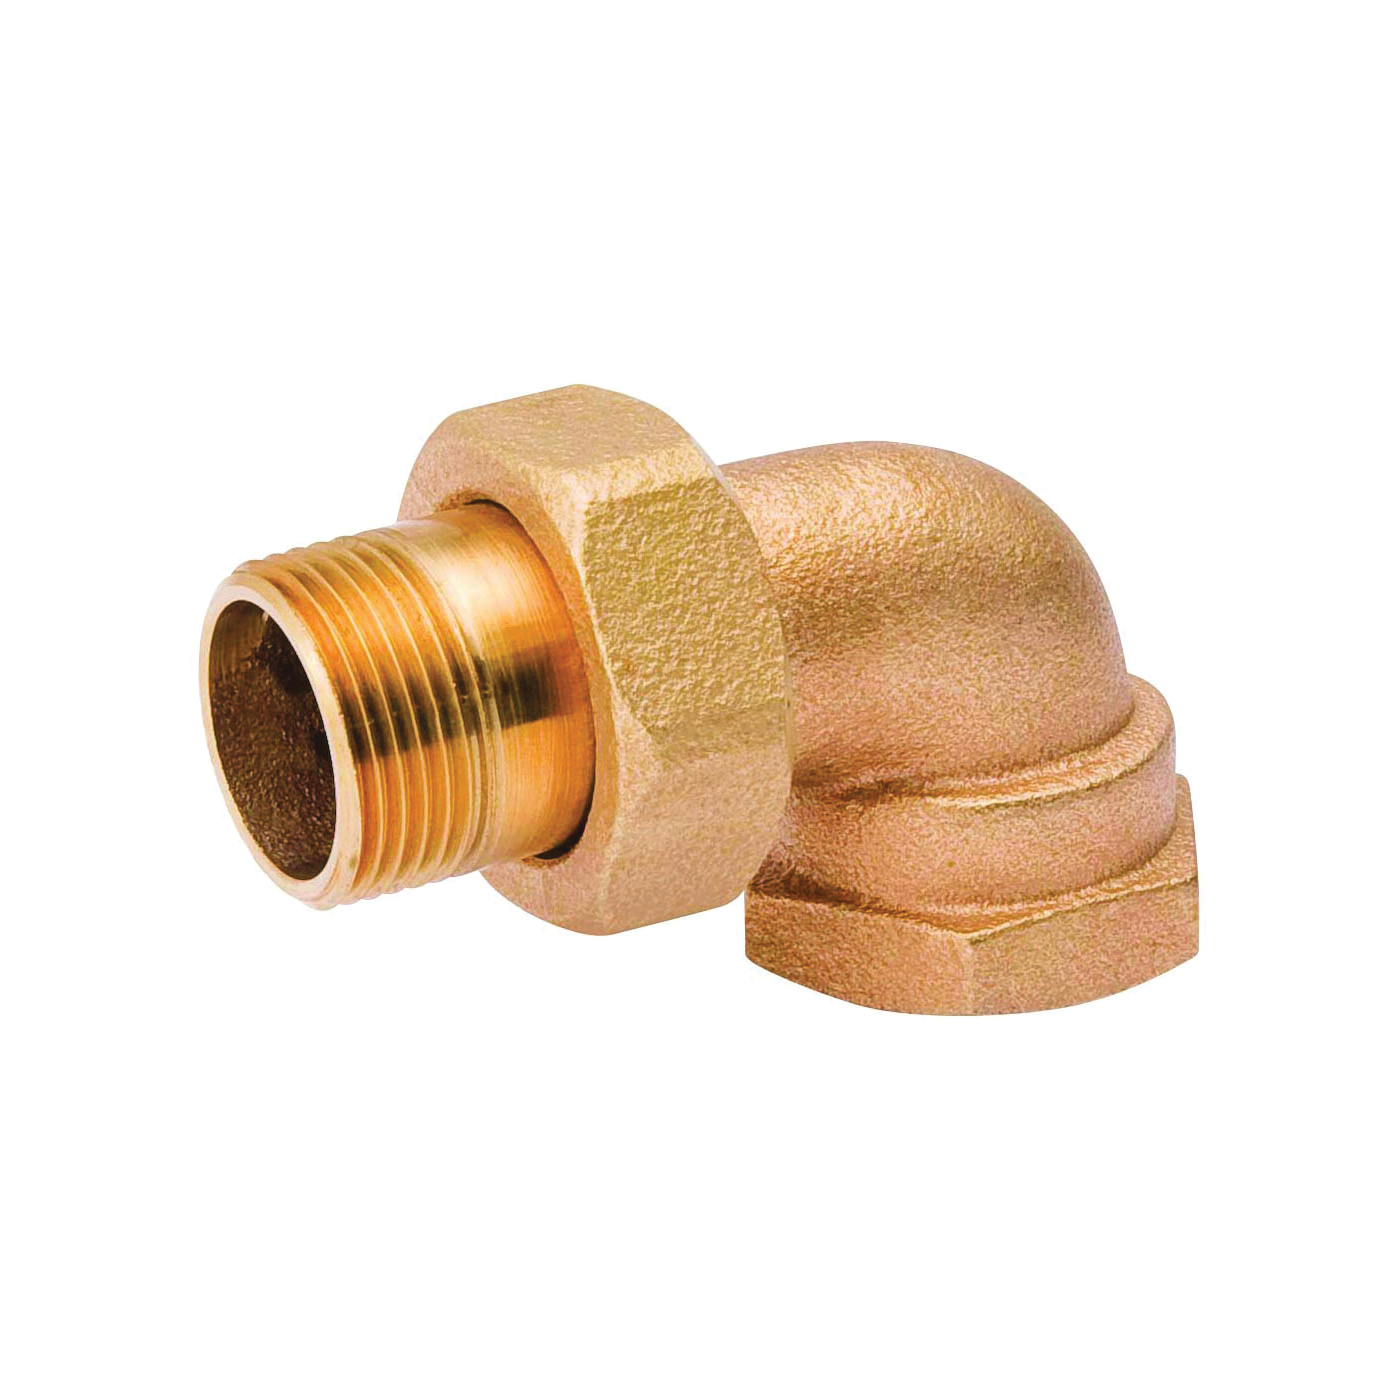 Picture of B & K 109-385 Radiator Elbow Nut and Tailpiece, Brass